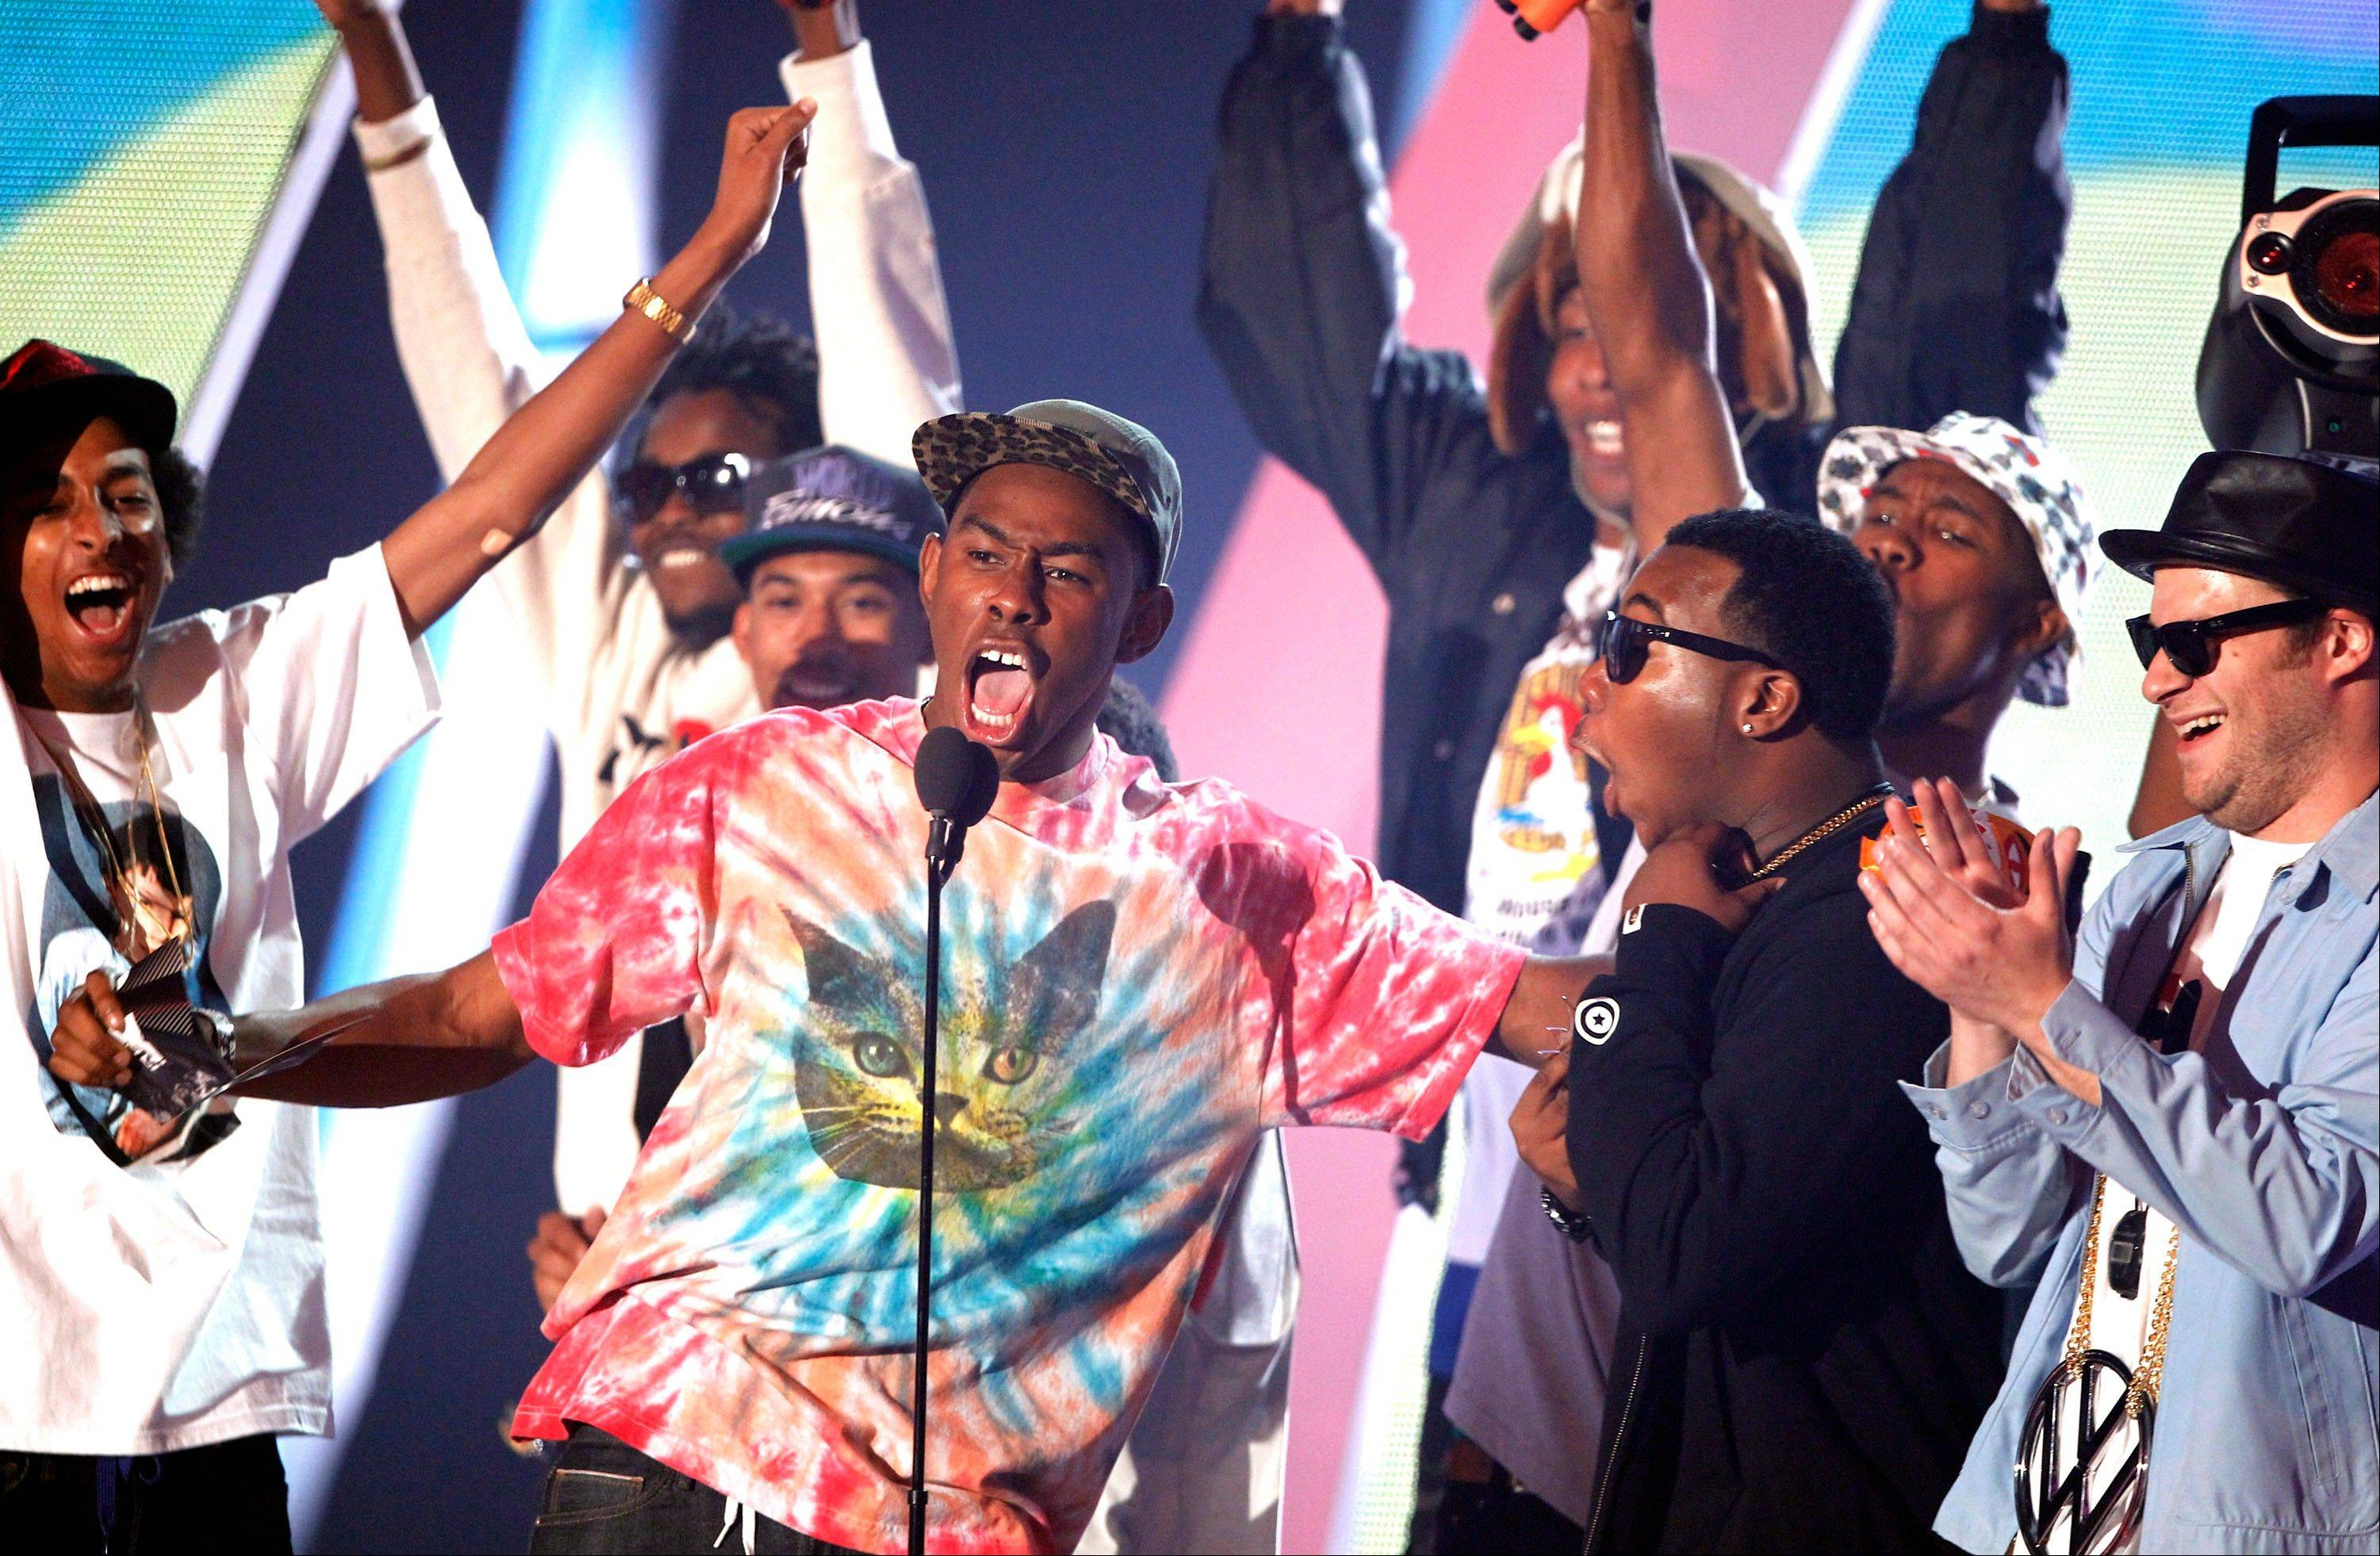 Tyler the Creator, center, presents the best hip hop video award at the MTV Video Music Awards on Sunday Aug. 28, 2011, in Los Angeles.